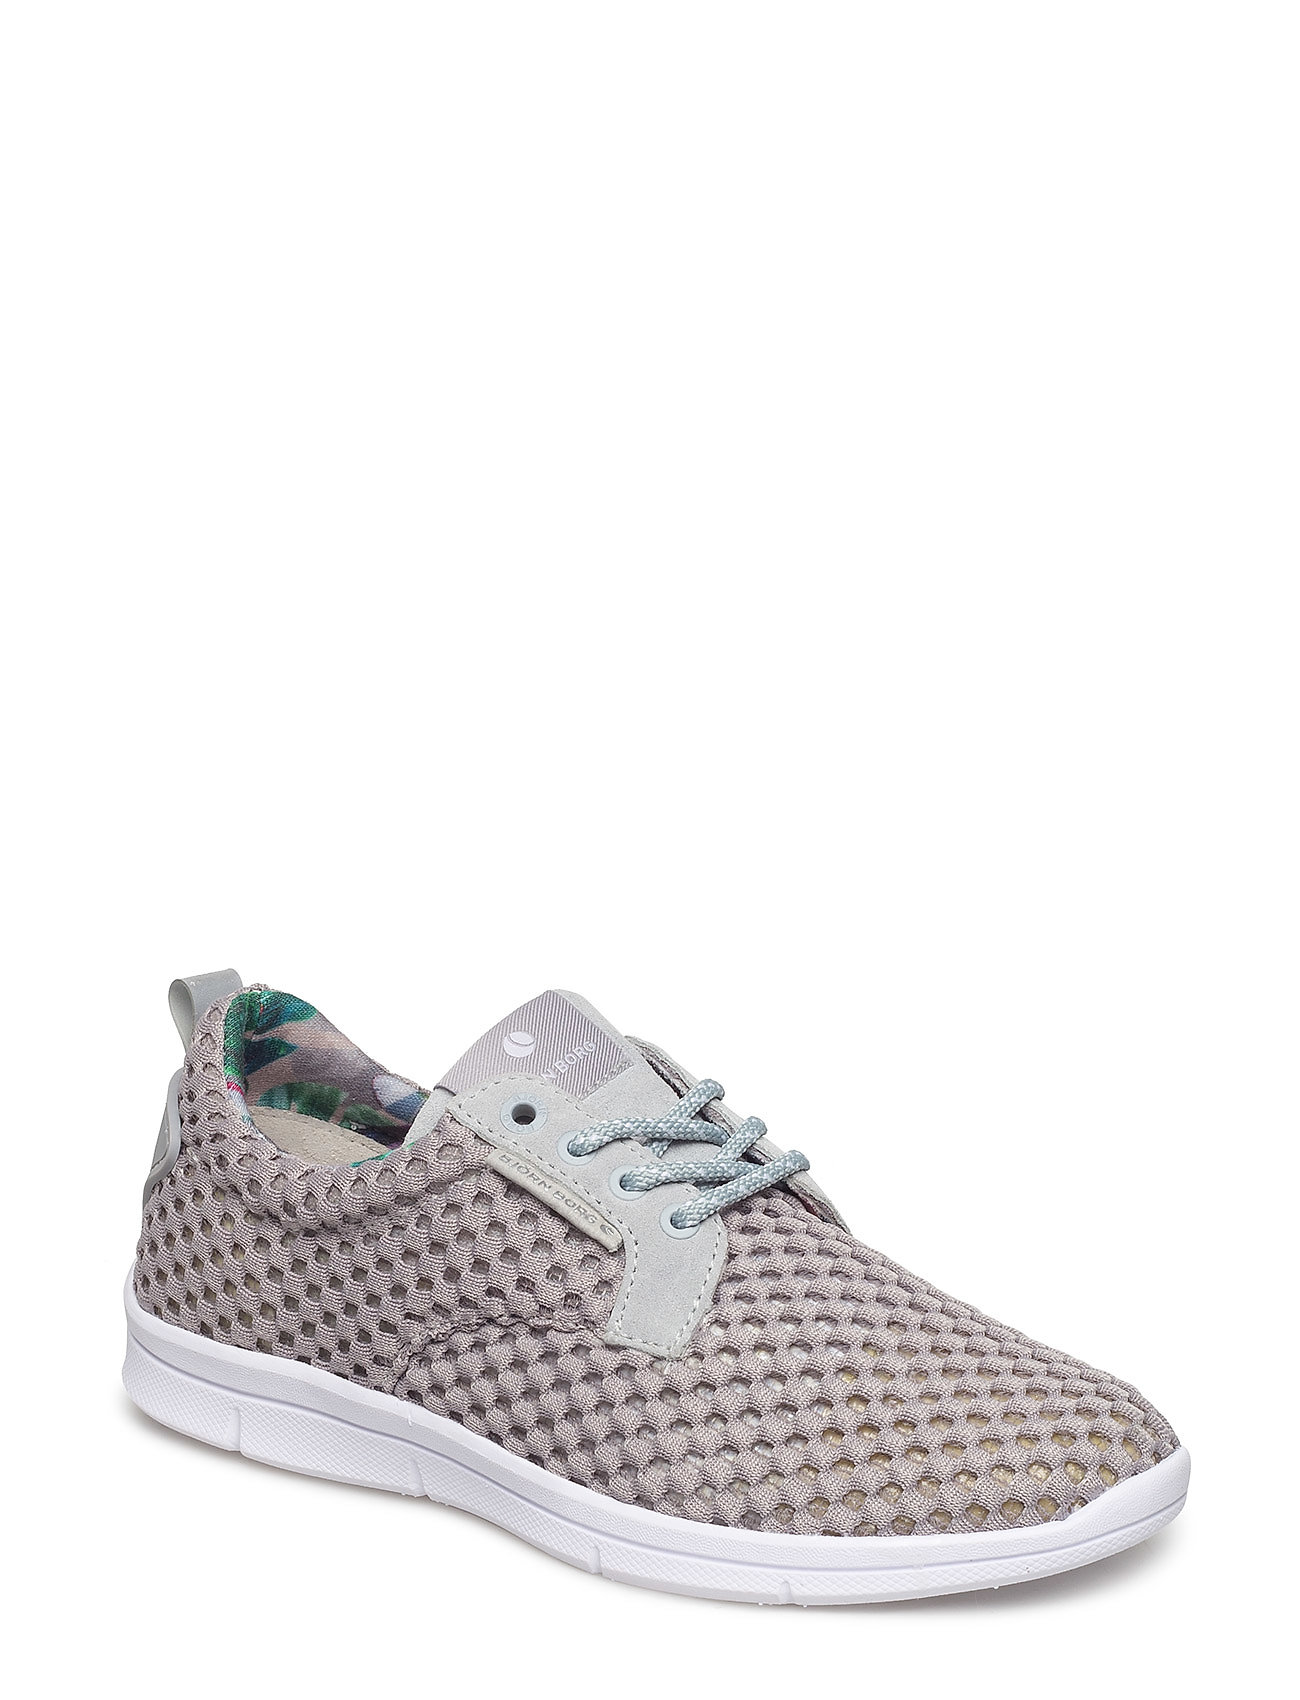 X200 Low 3d W Low top Sneakers Grå BJÖRN BORG